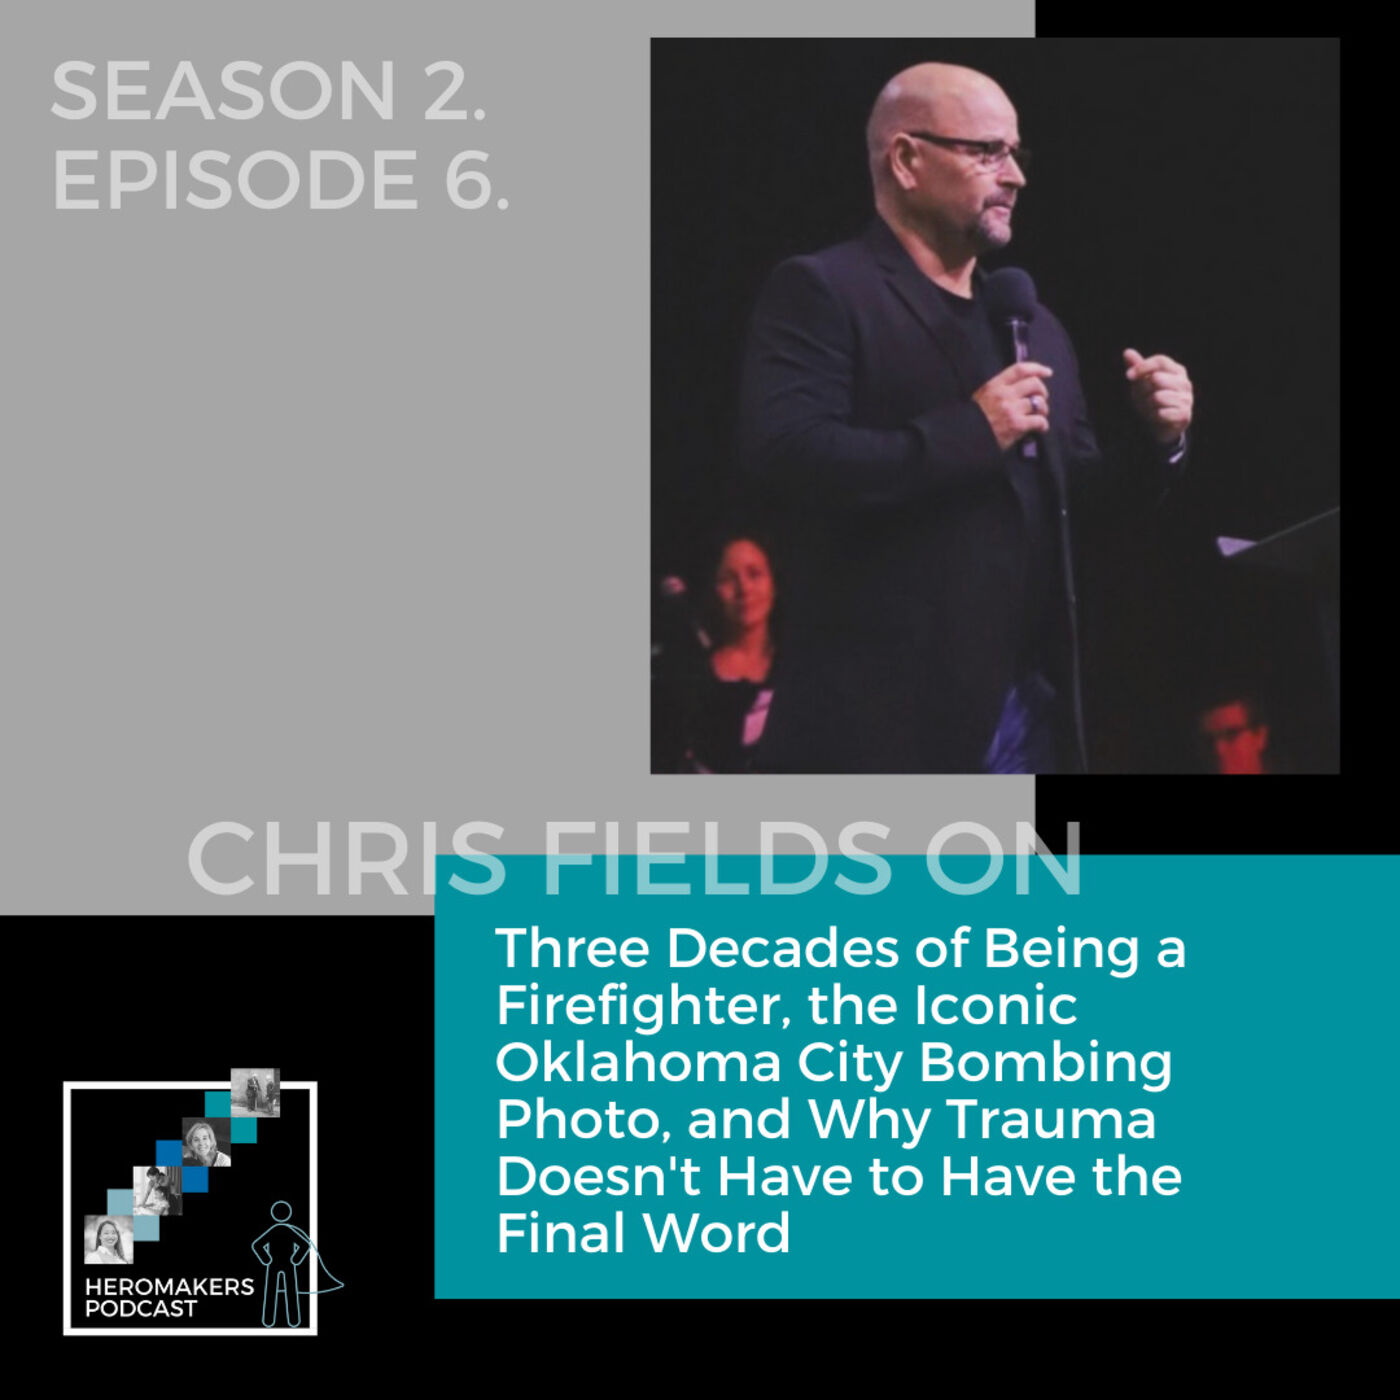 Chris Fields on Three Decades of Being a Firefighter, the Iconic Oklahoma City Bombing Photo, and Why Trauma Doesn't Have to Have the Final Word